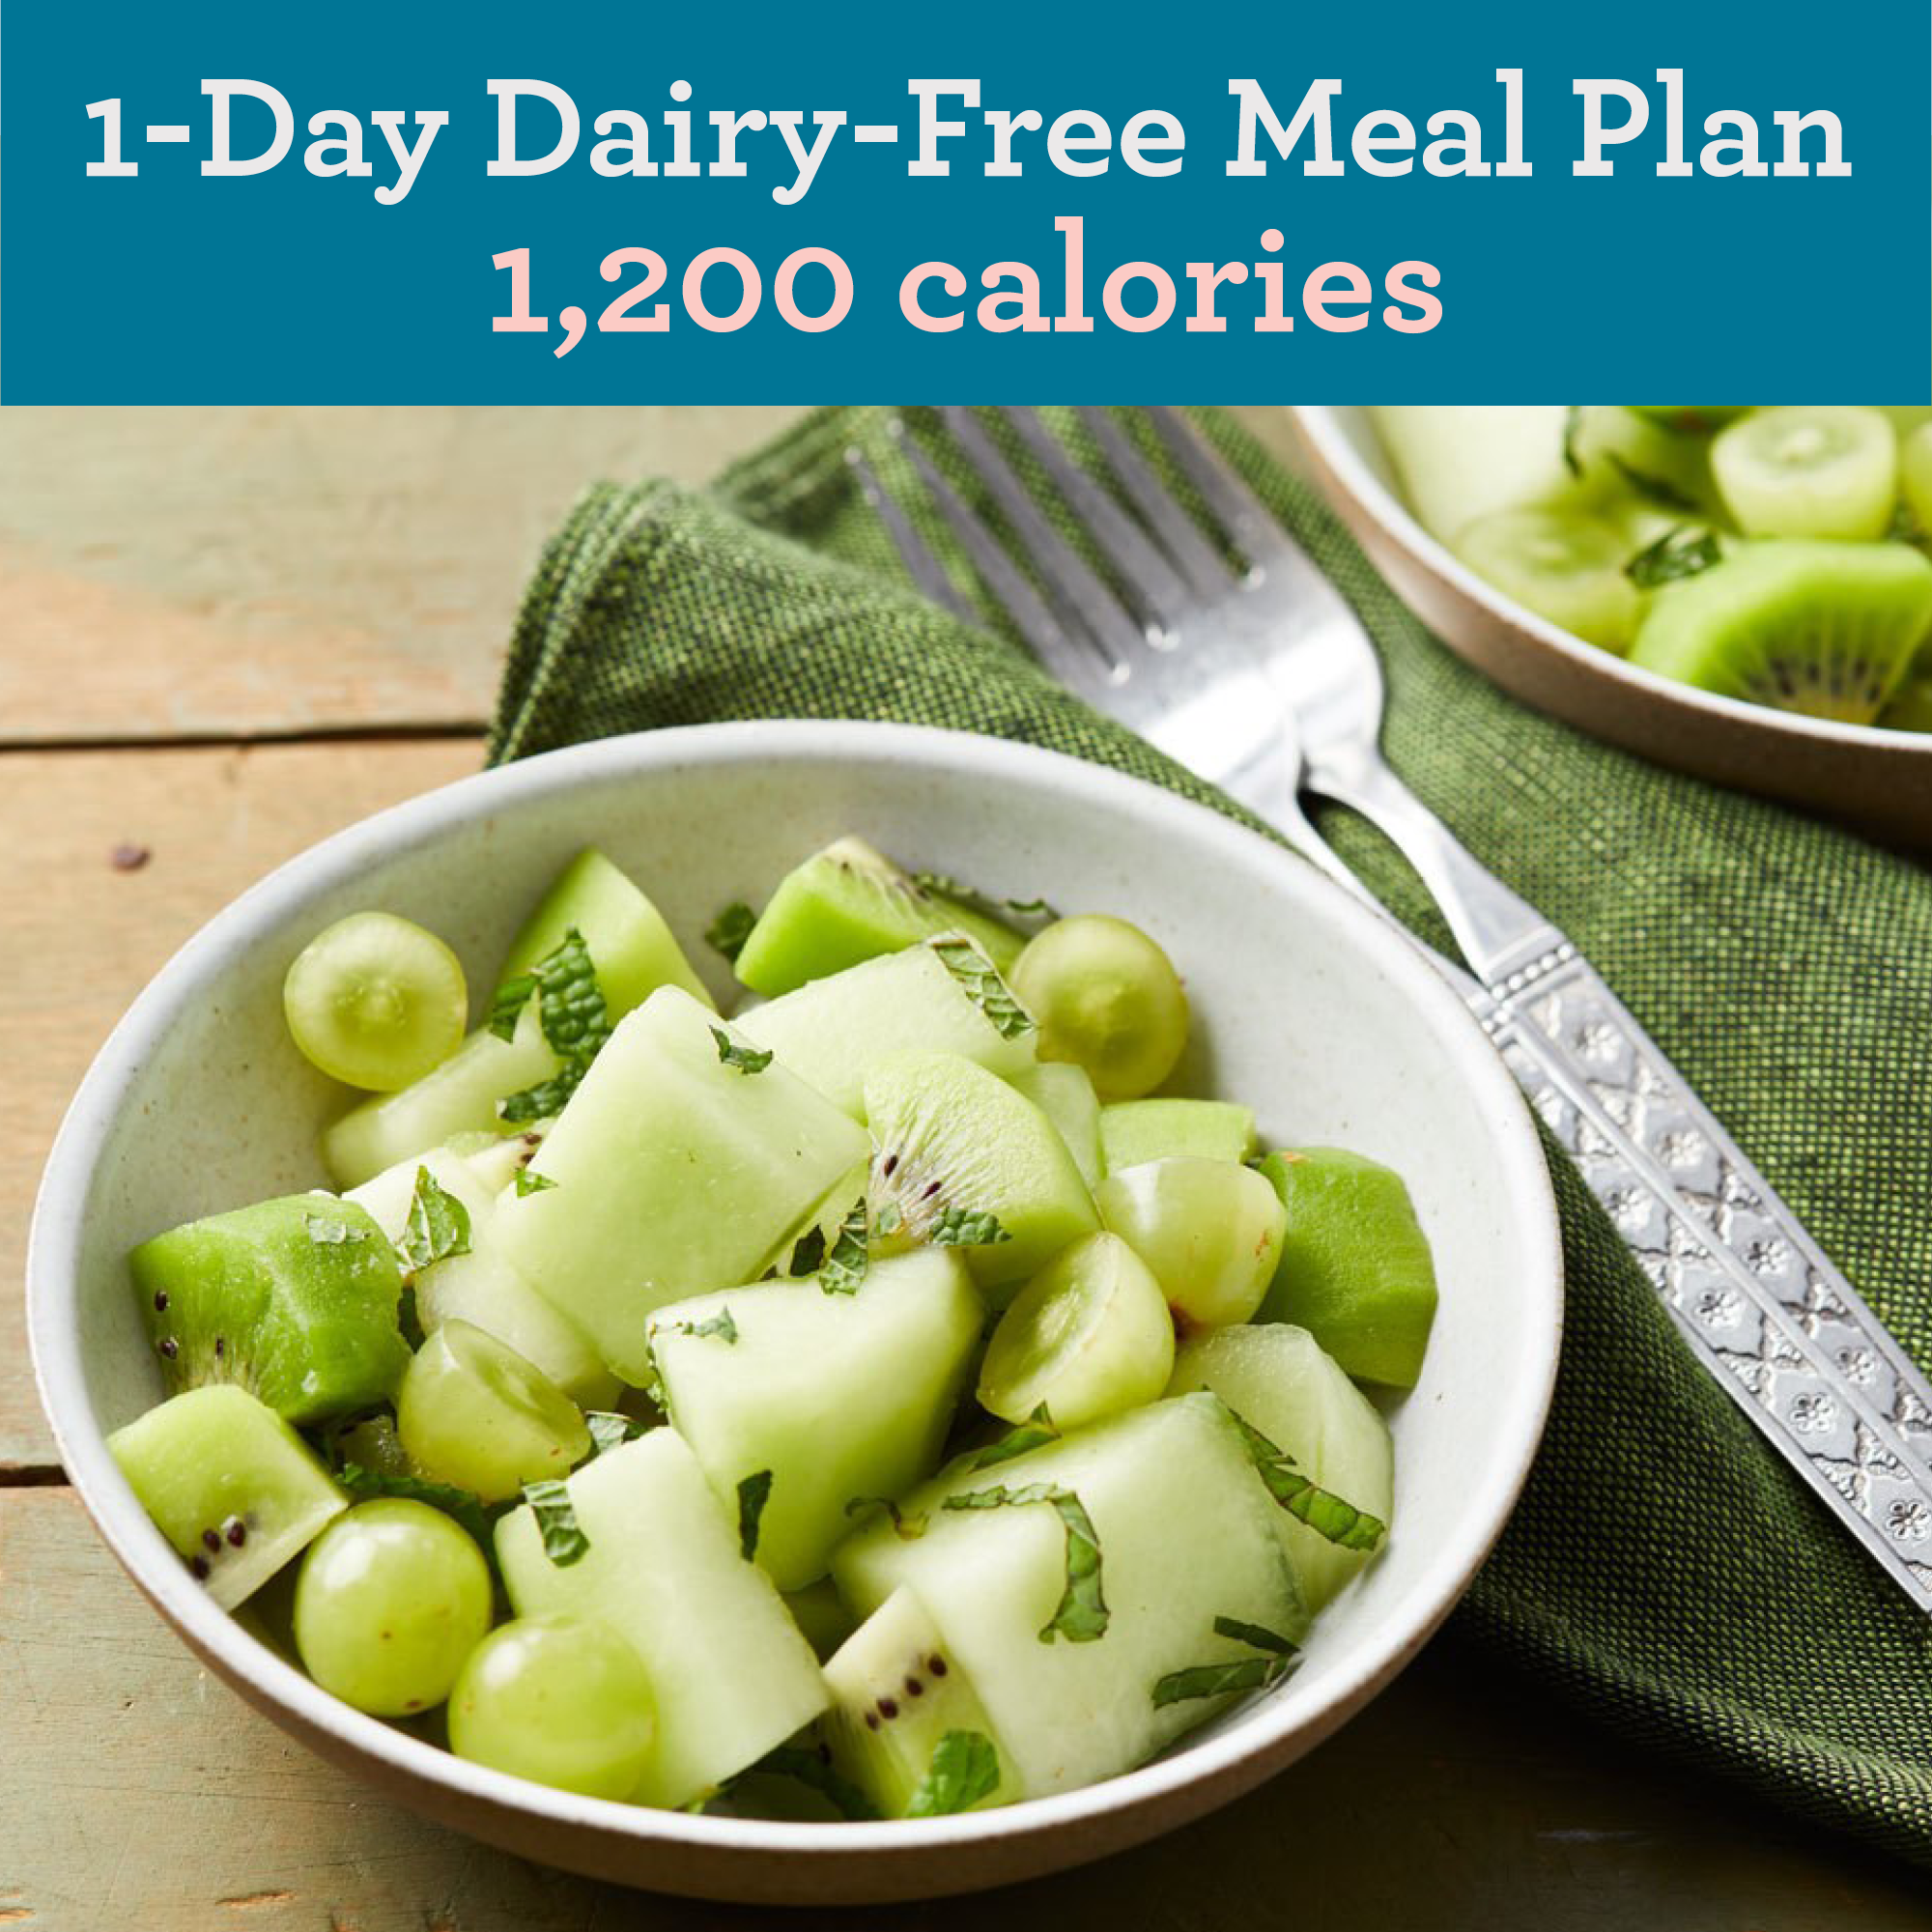 1-Day Dairy-Free Meal Plan: 1,200 Calories